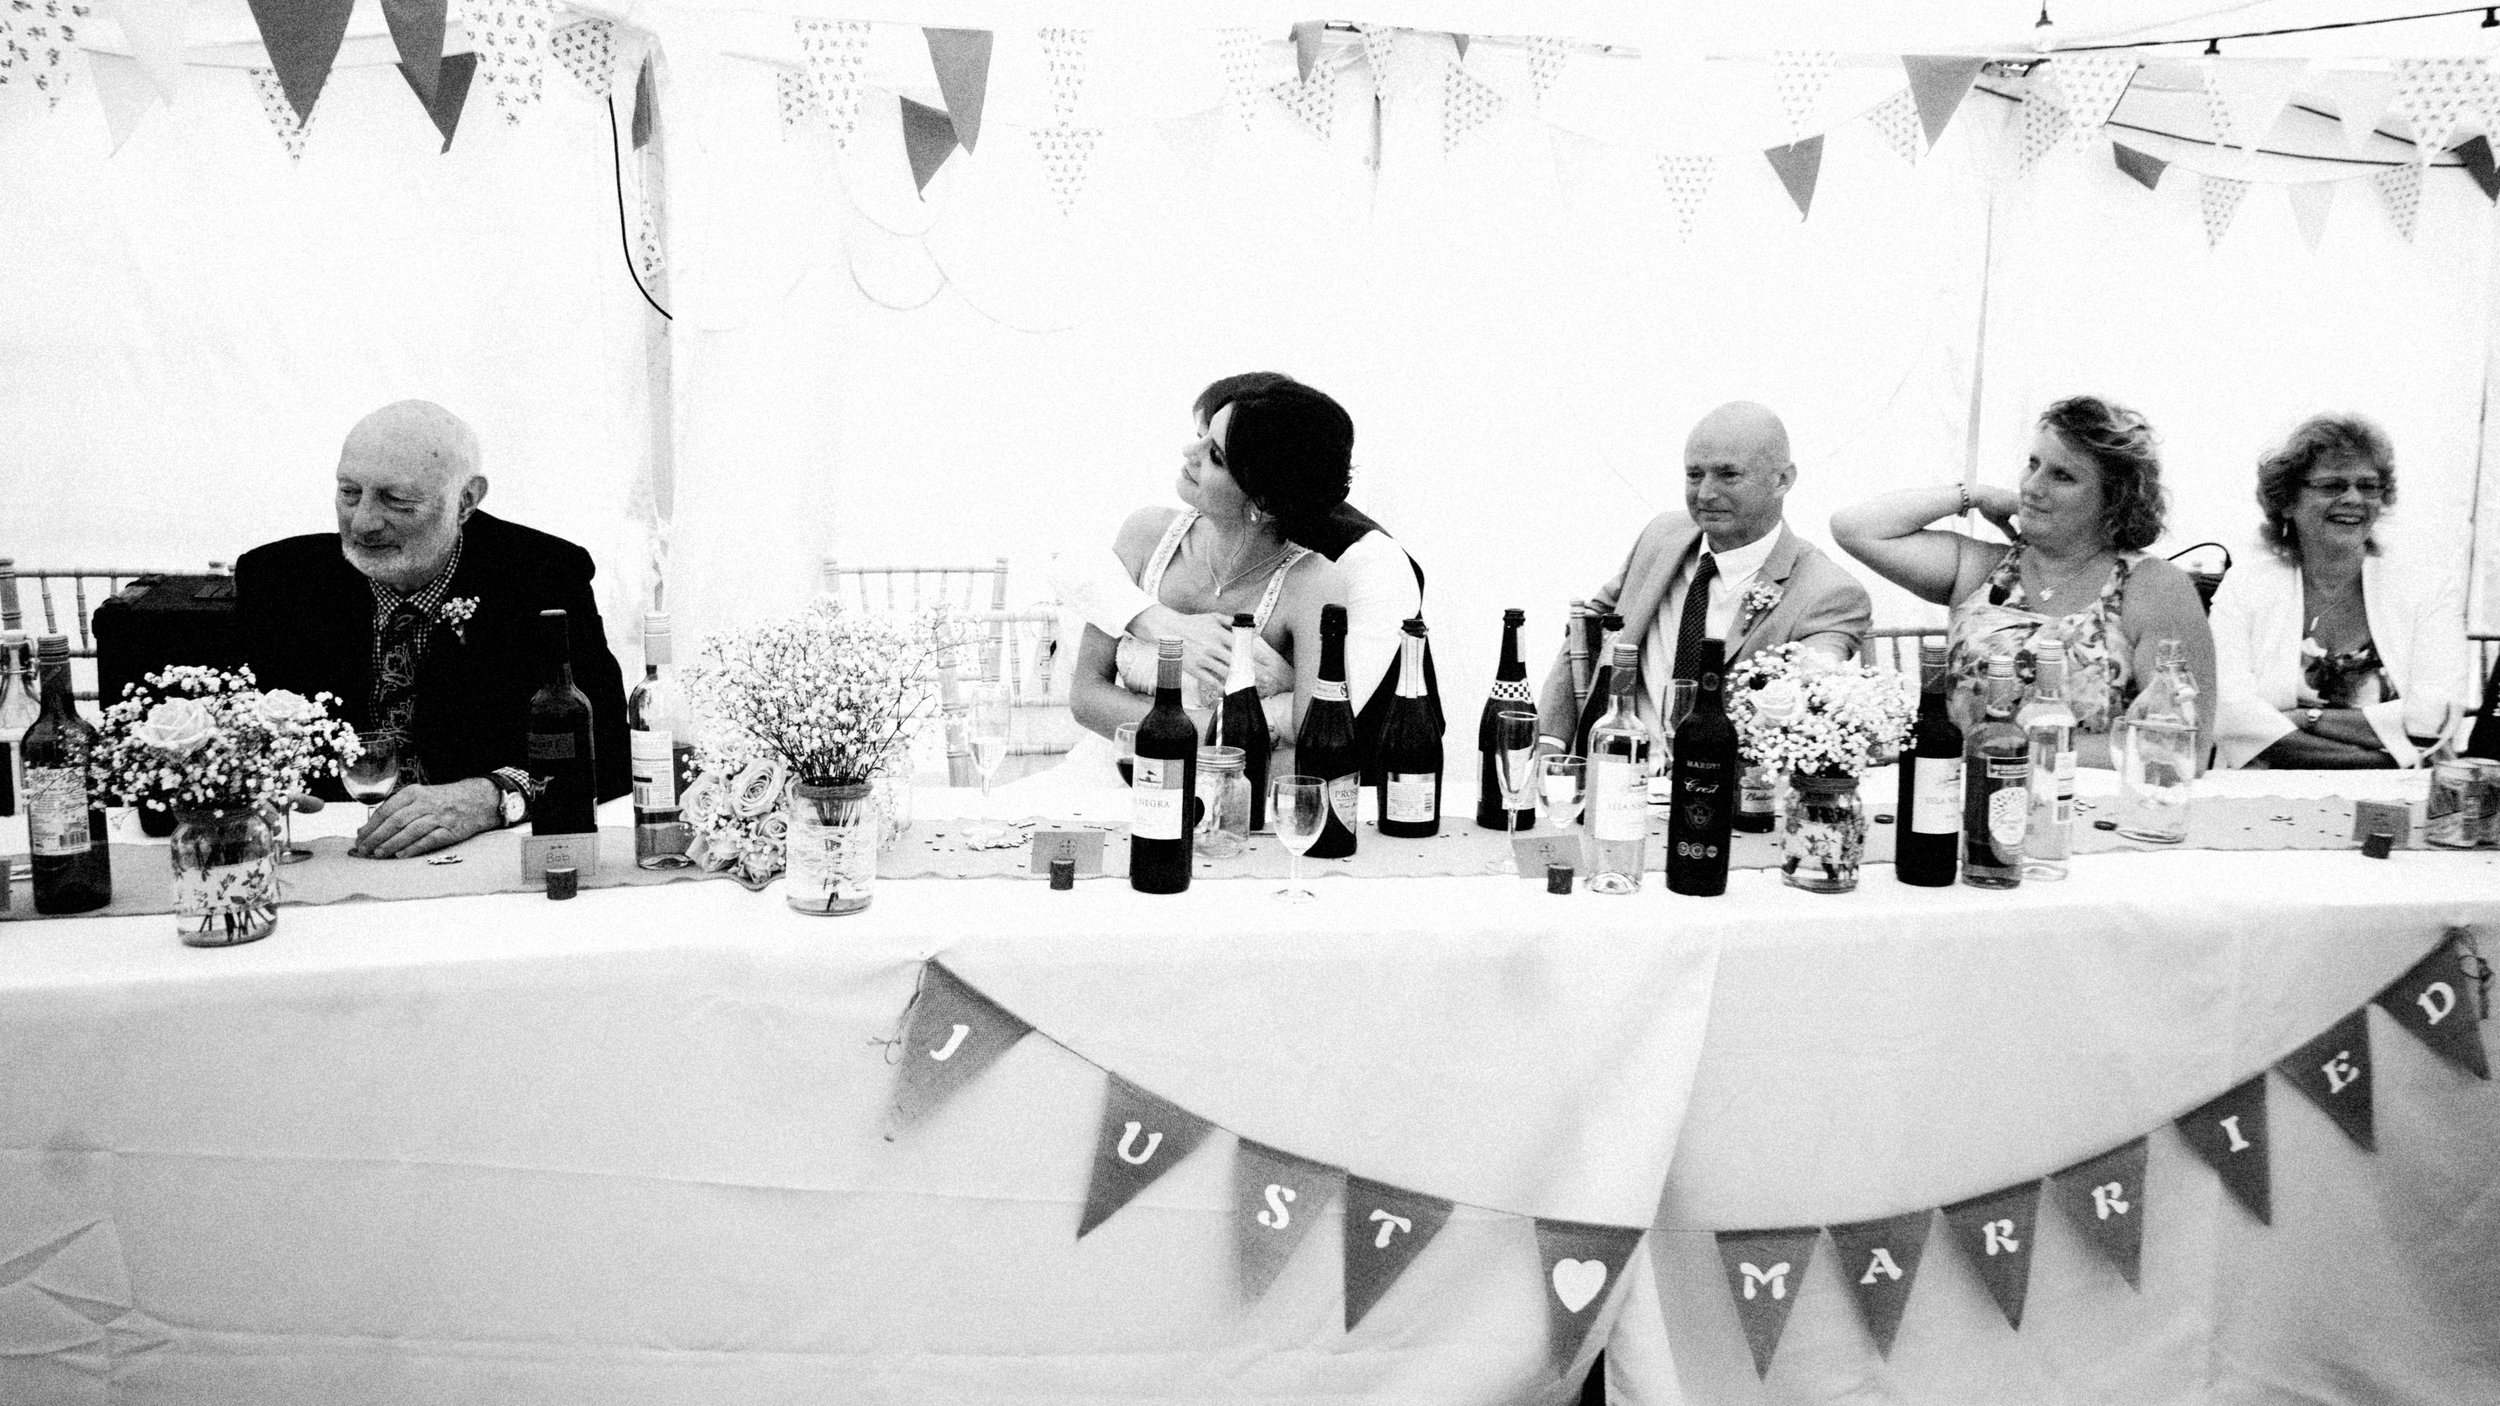 hamps-hall-and-barn-peak-district-documentary-0062wedding-photographer-.JPG